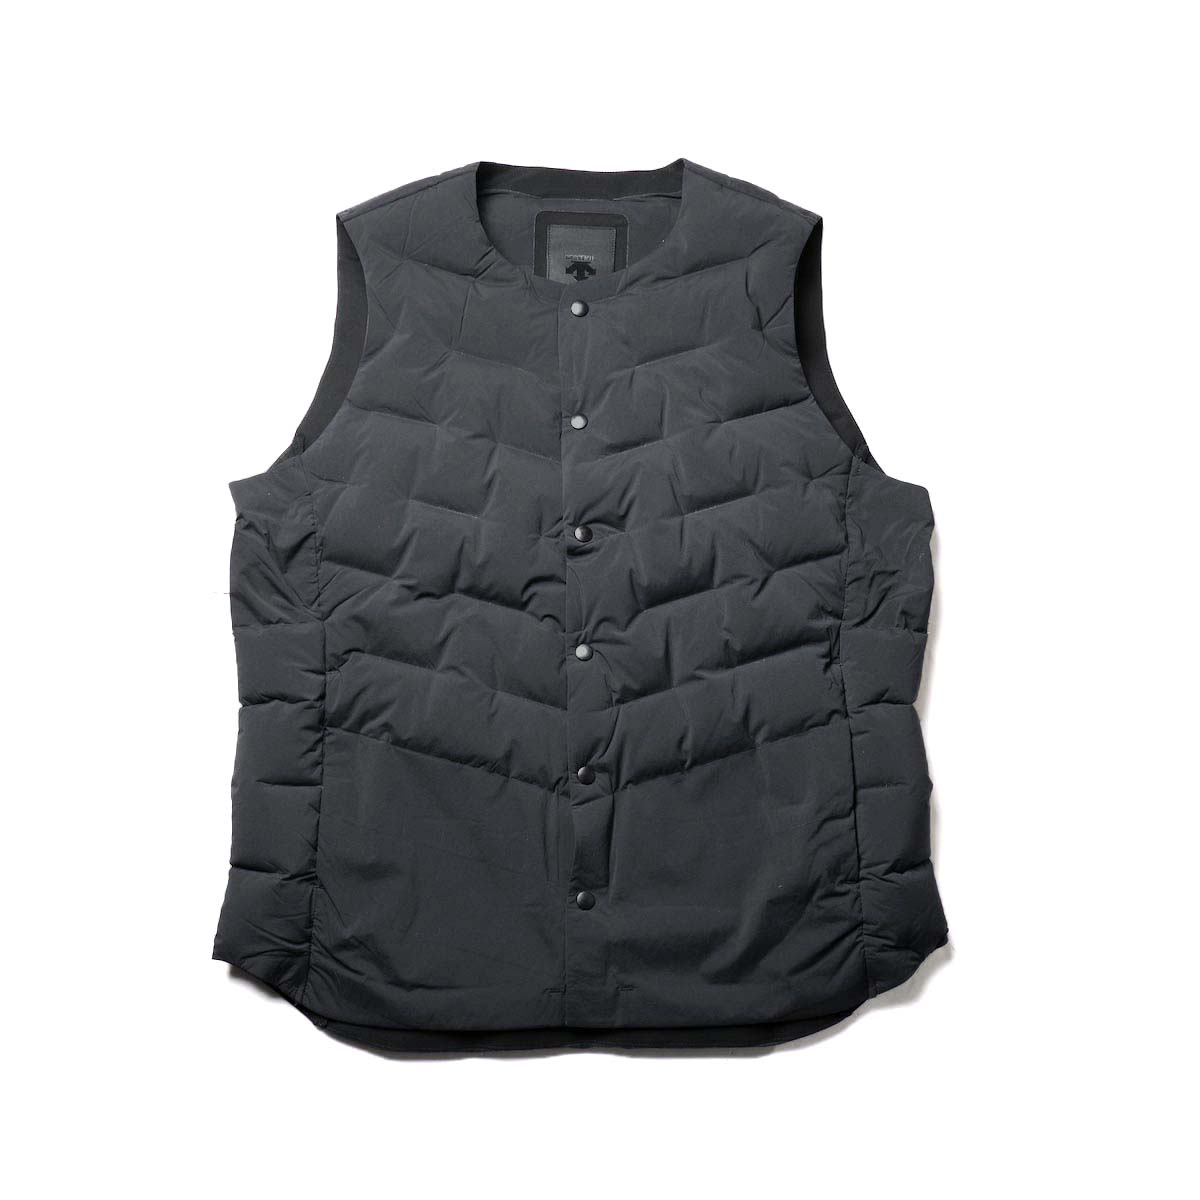 DESCENTE ALLTERAIN / D.I.S DOWN VEST (Black)